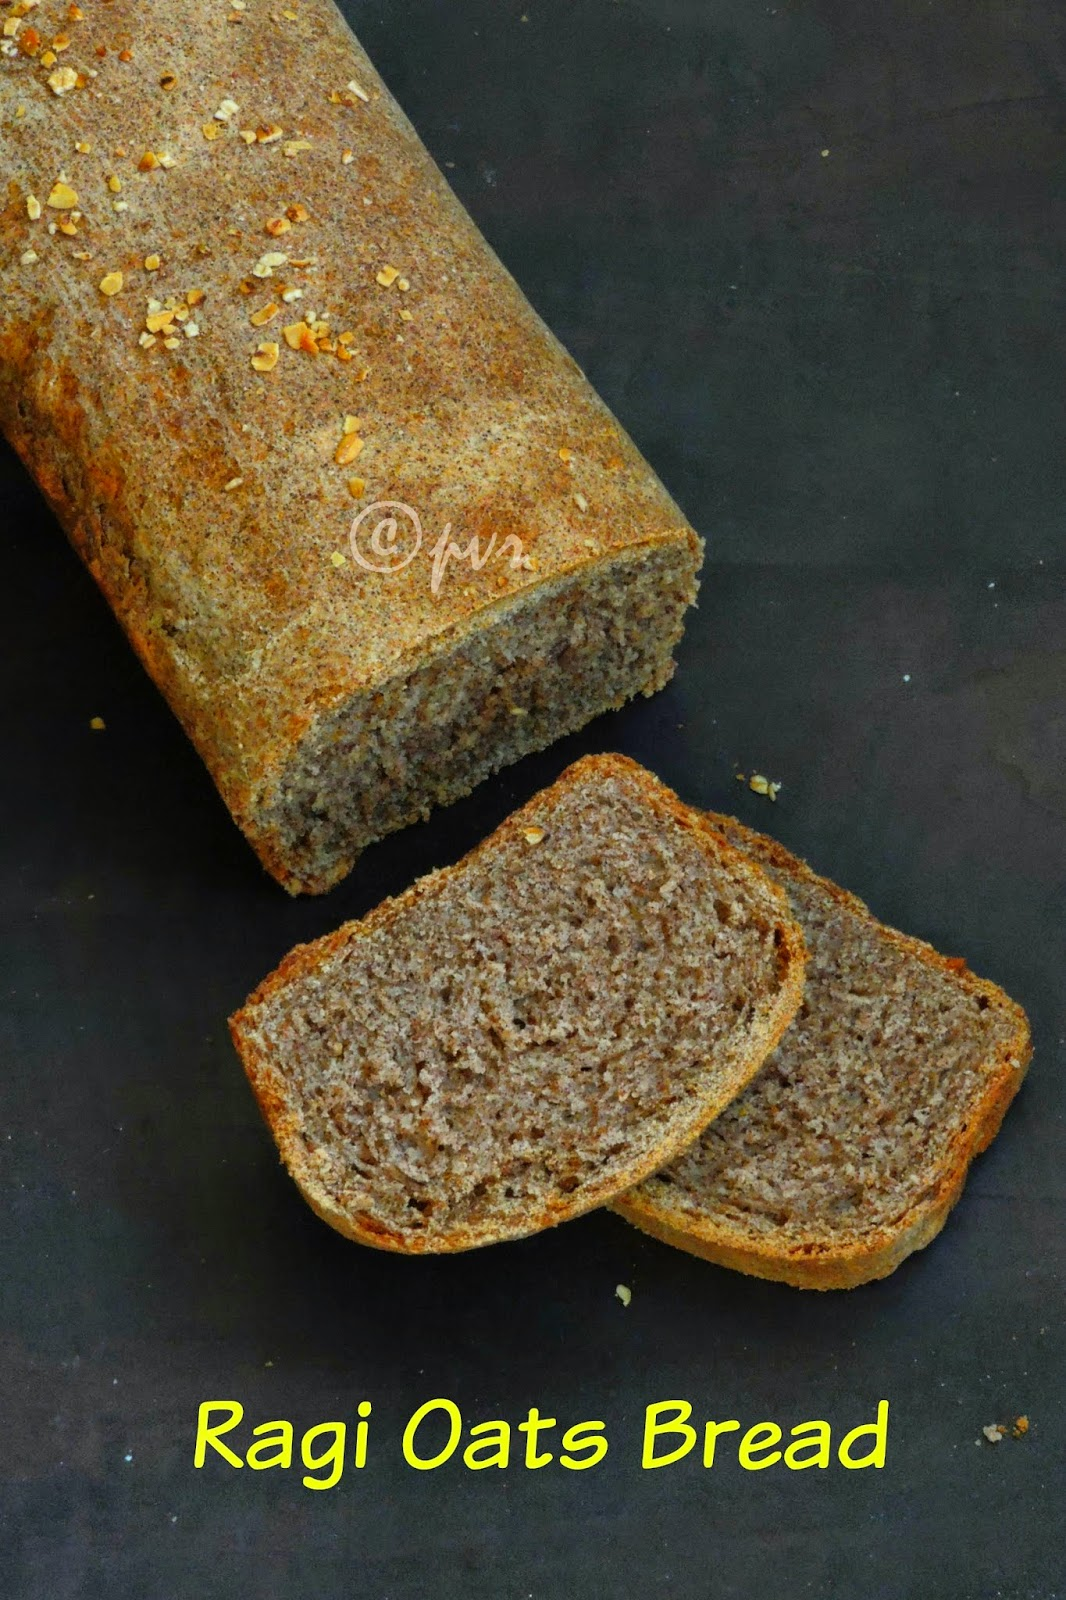 Ragi Oats Bread Loaf, Ragi Bread